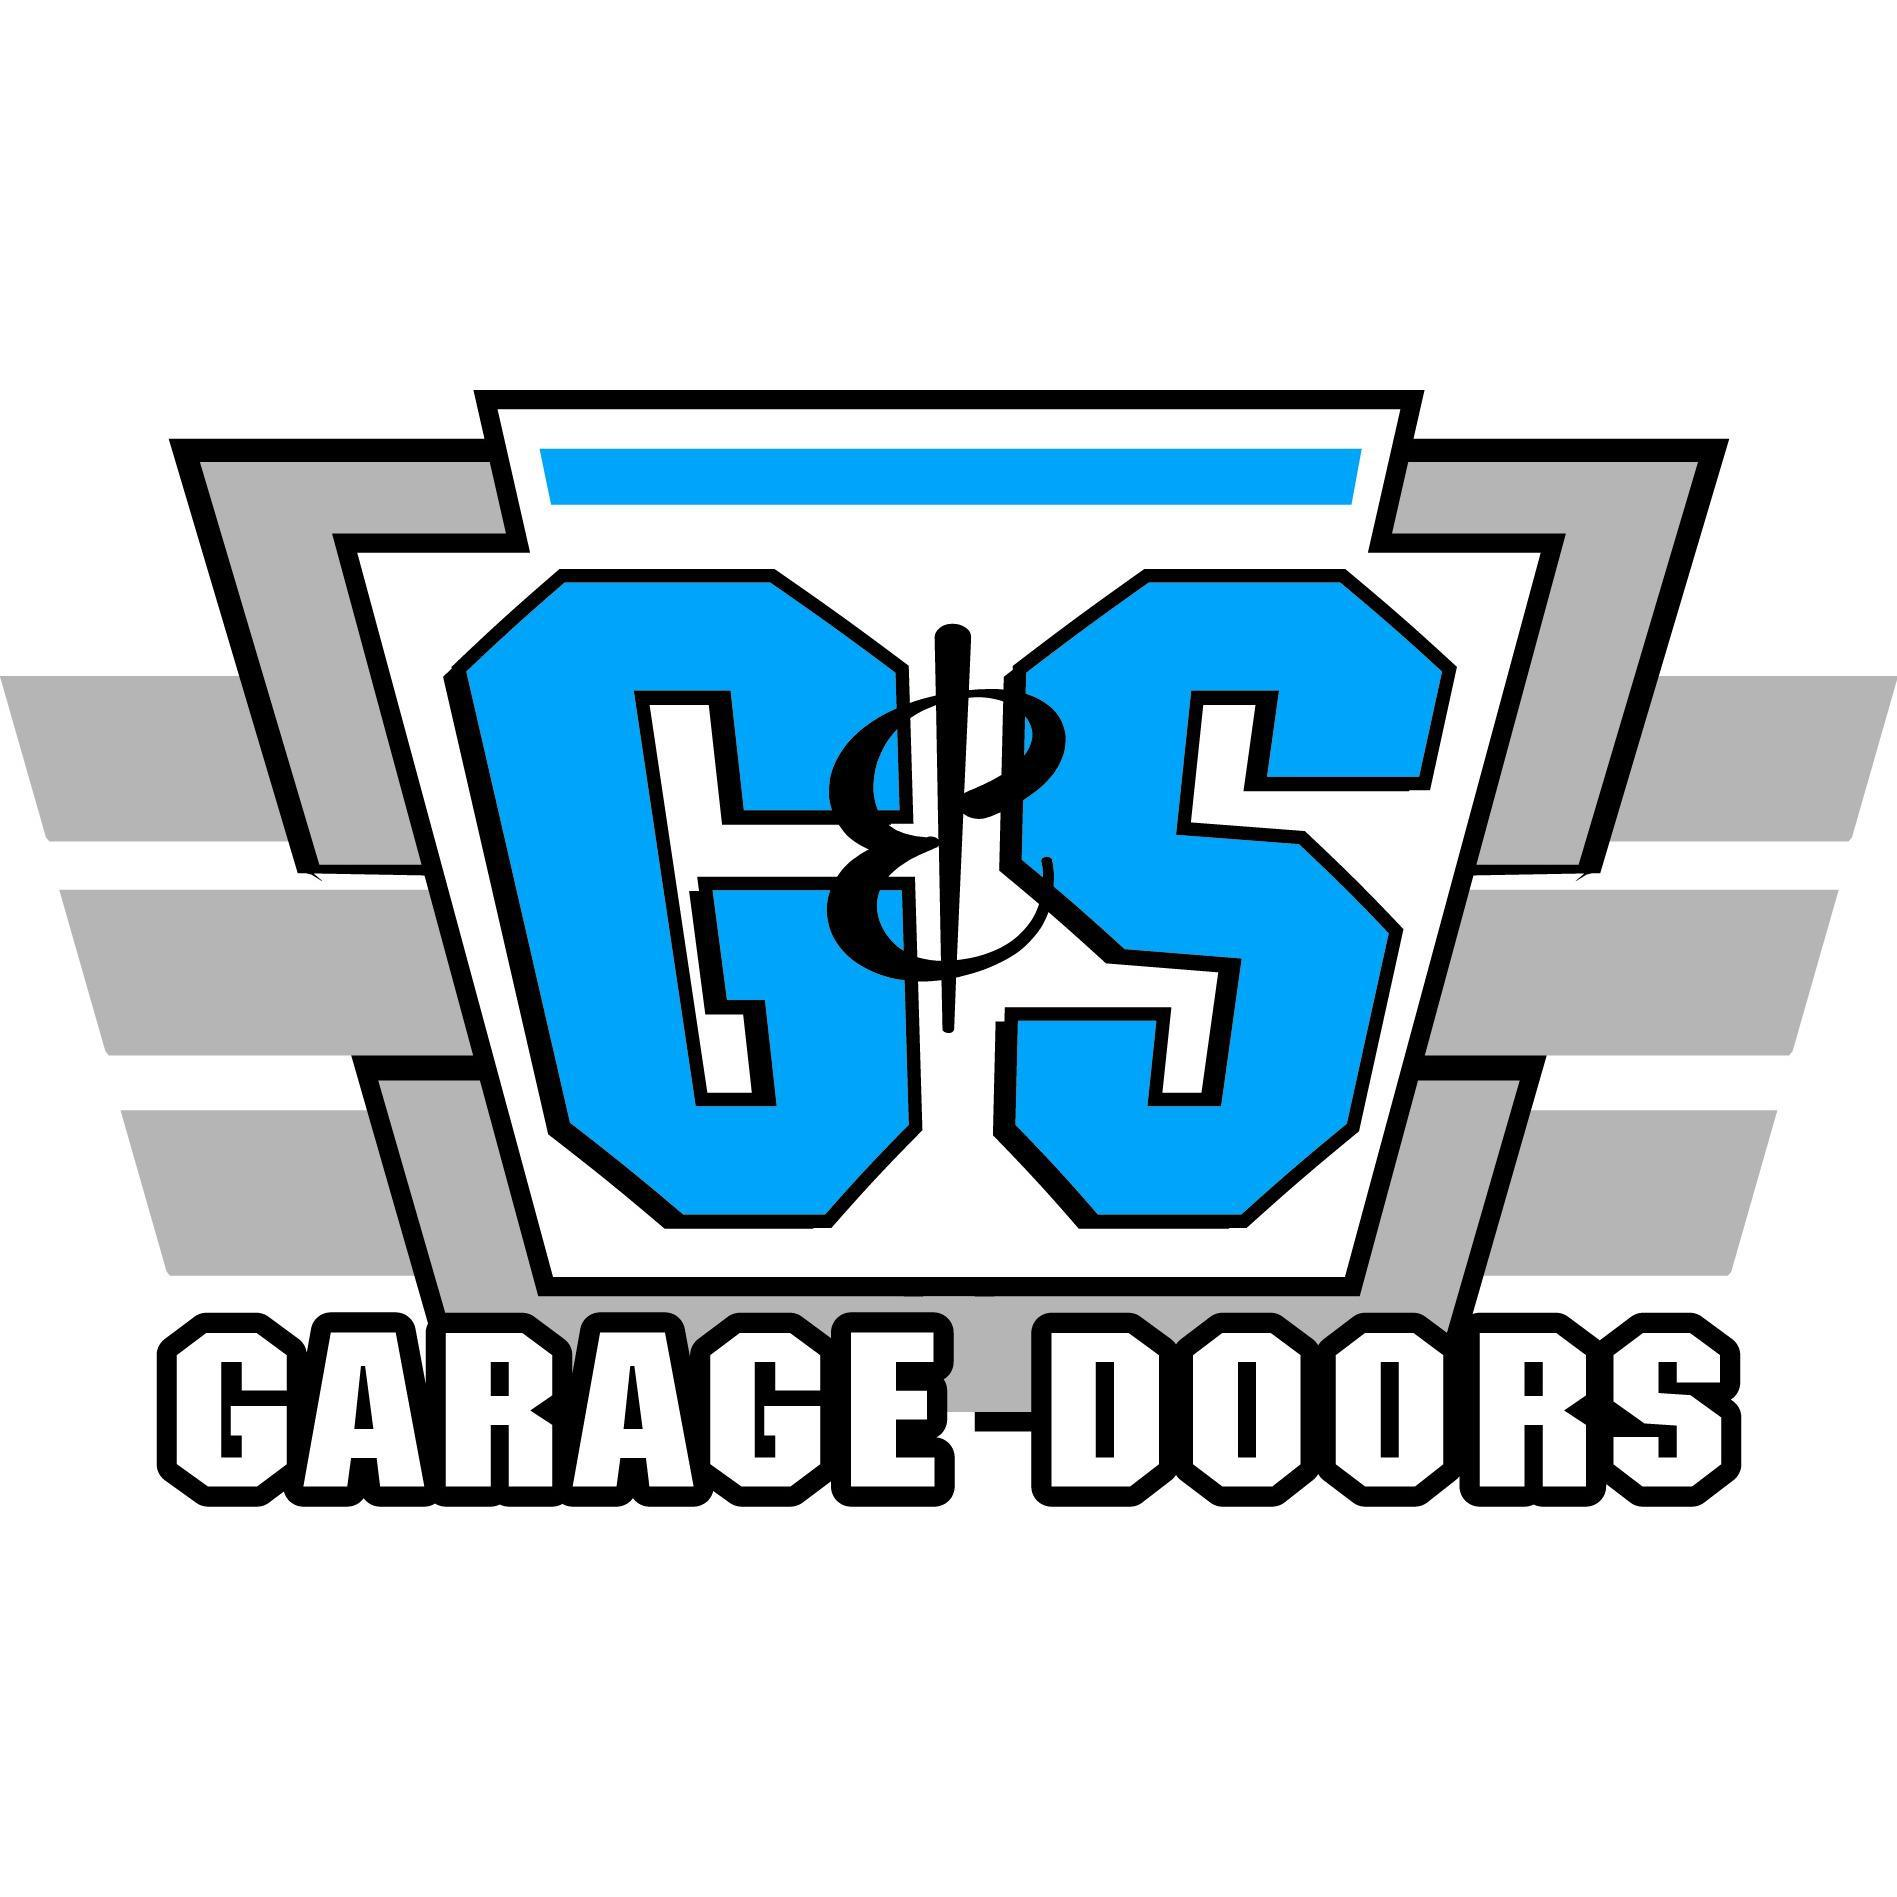 VA Garage Door Repair | VA Garage Door Installation | Gu0026S Garage Doors